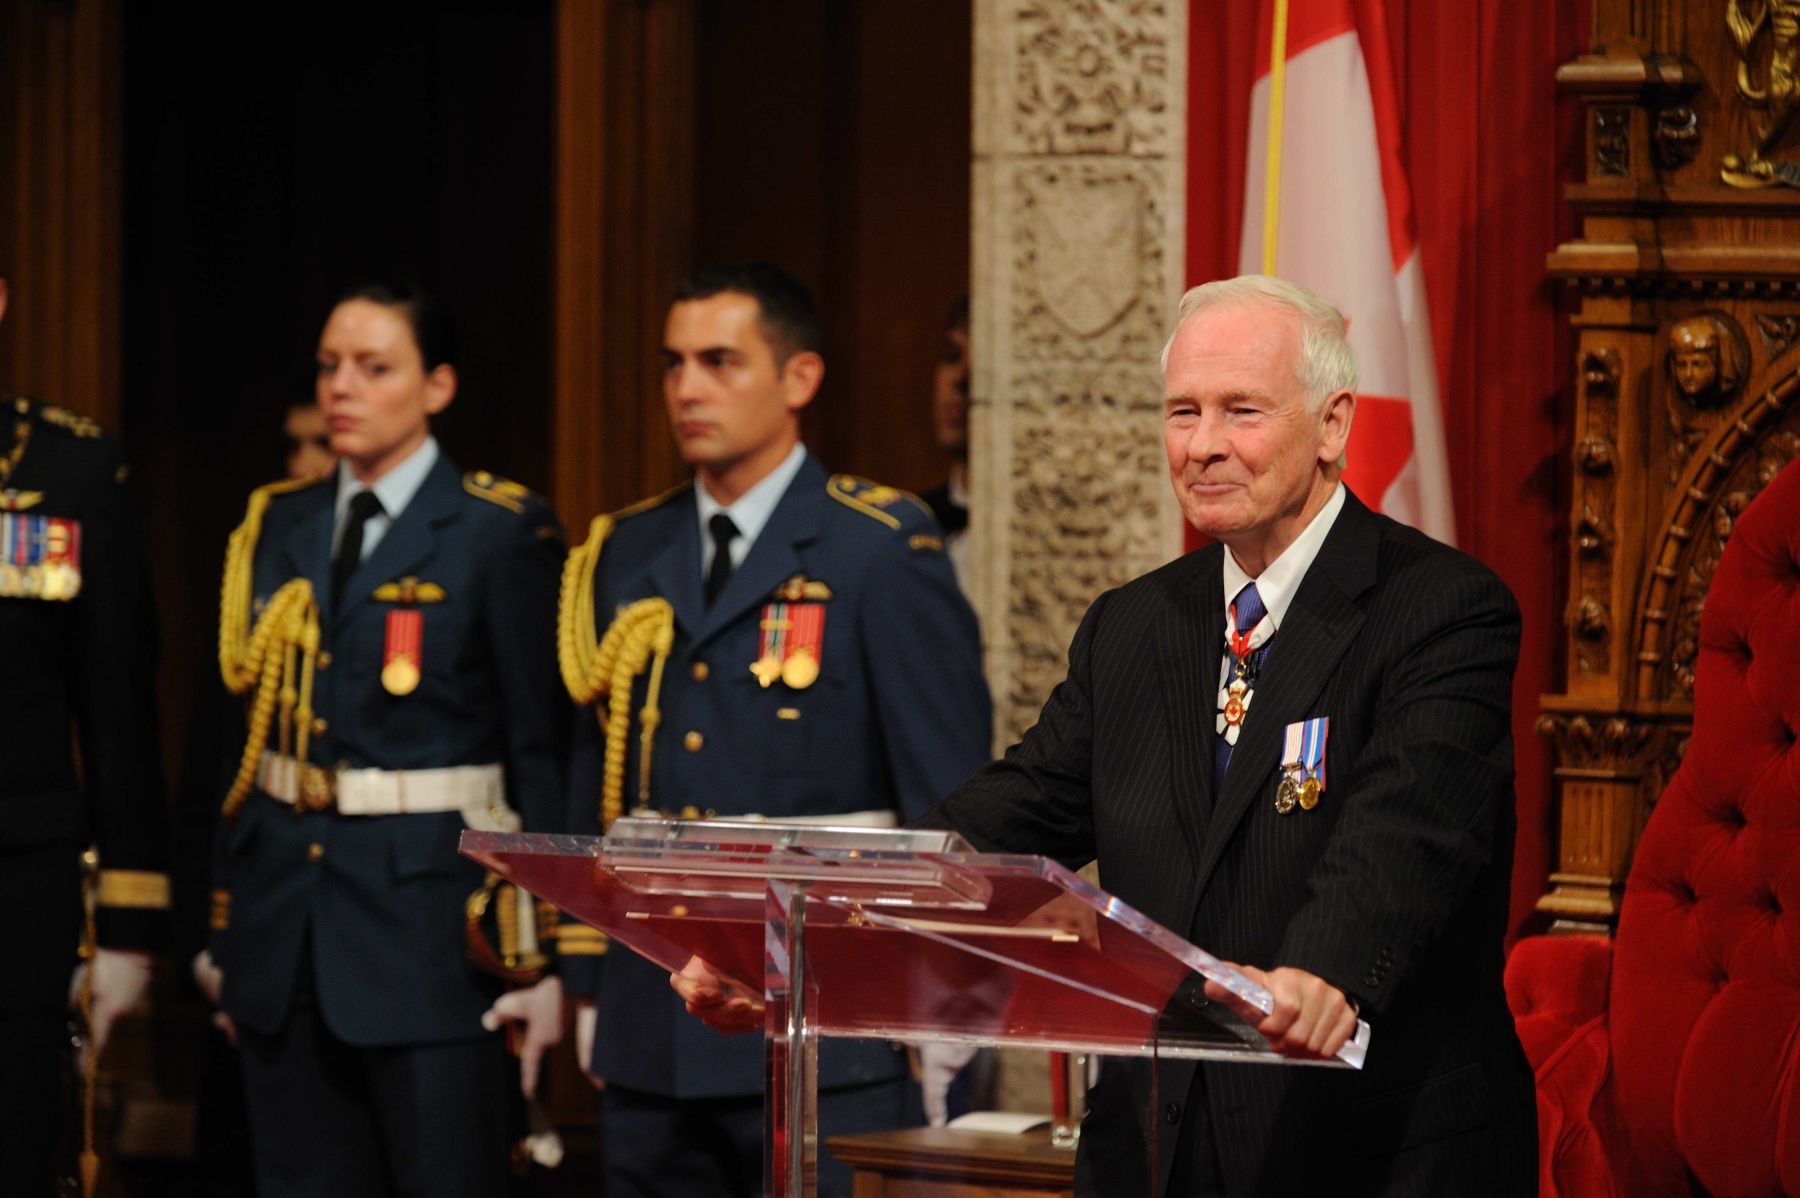 David Johnston became the 28th Governor General of Canada today during an installation ceremony.